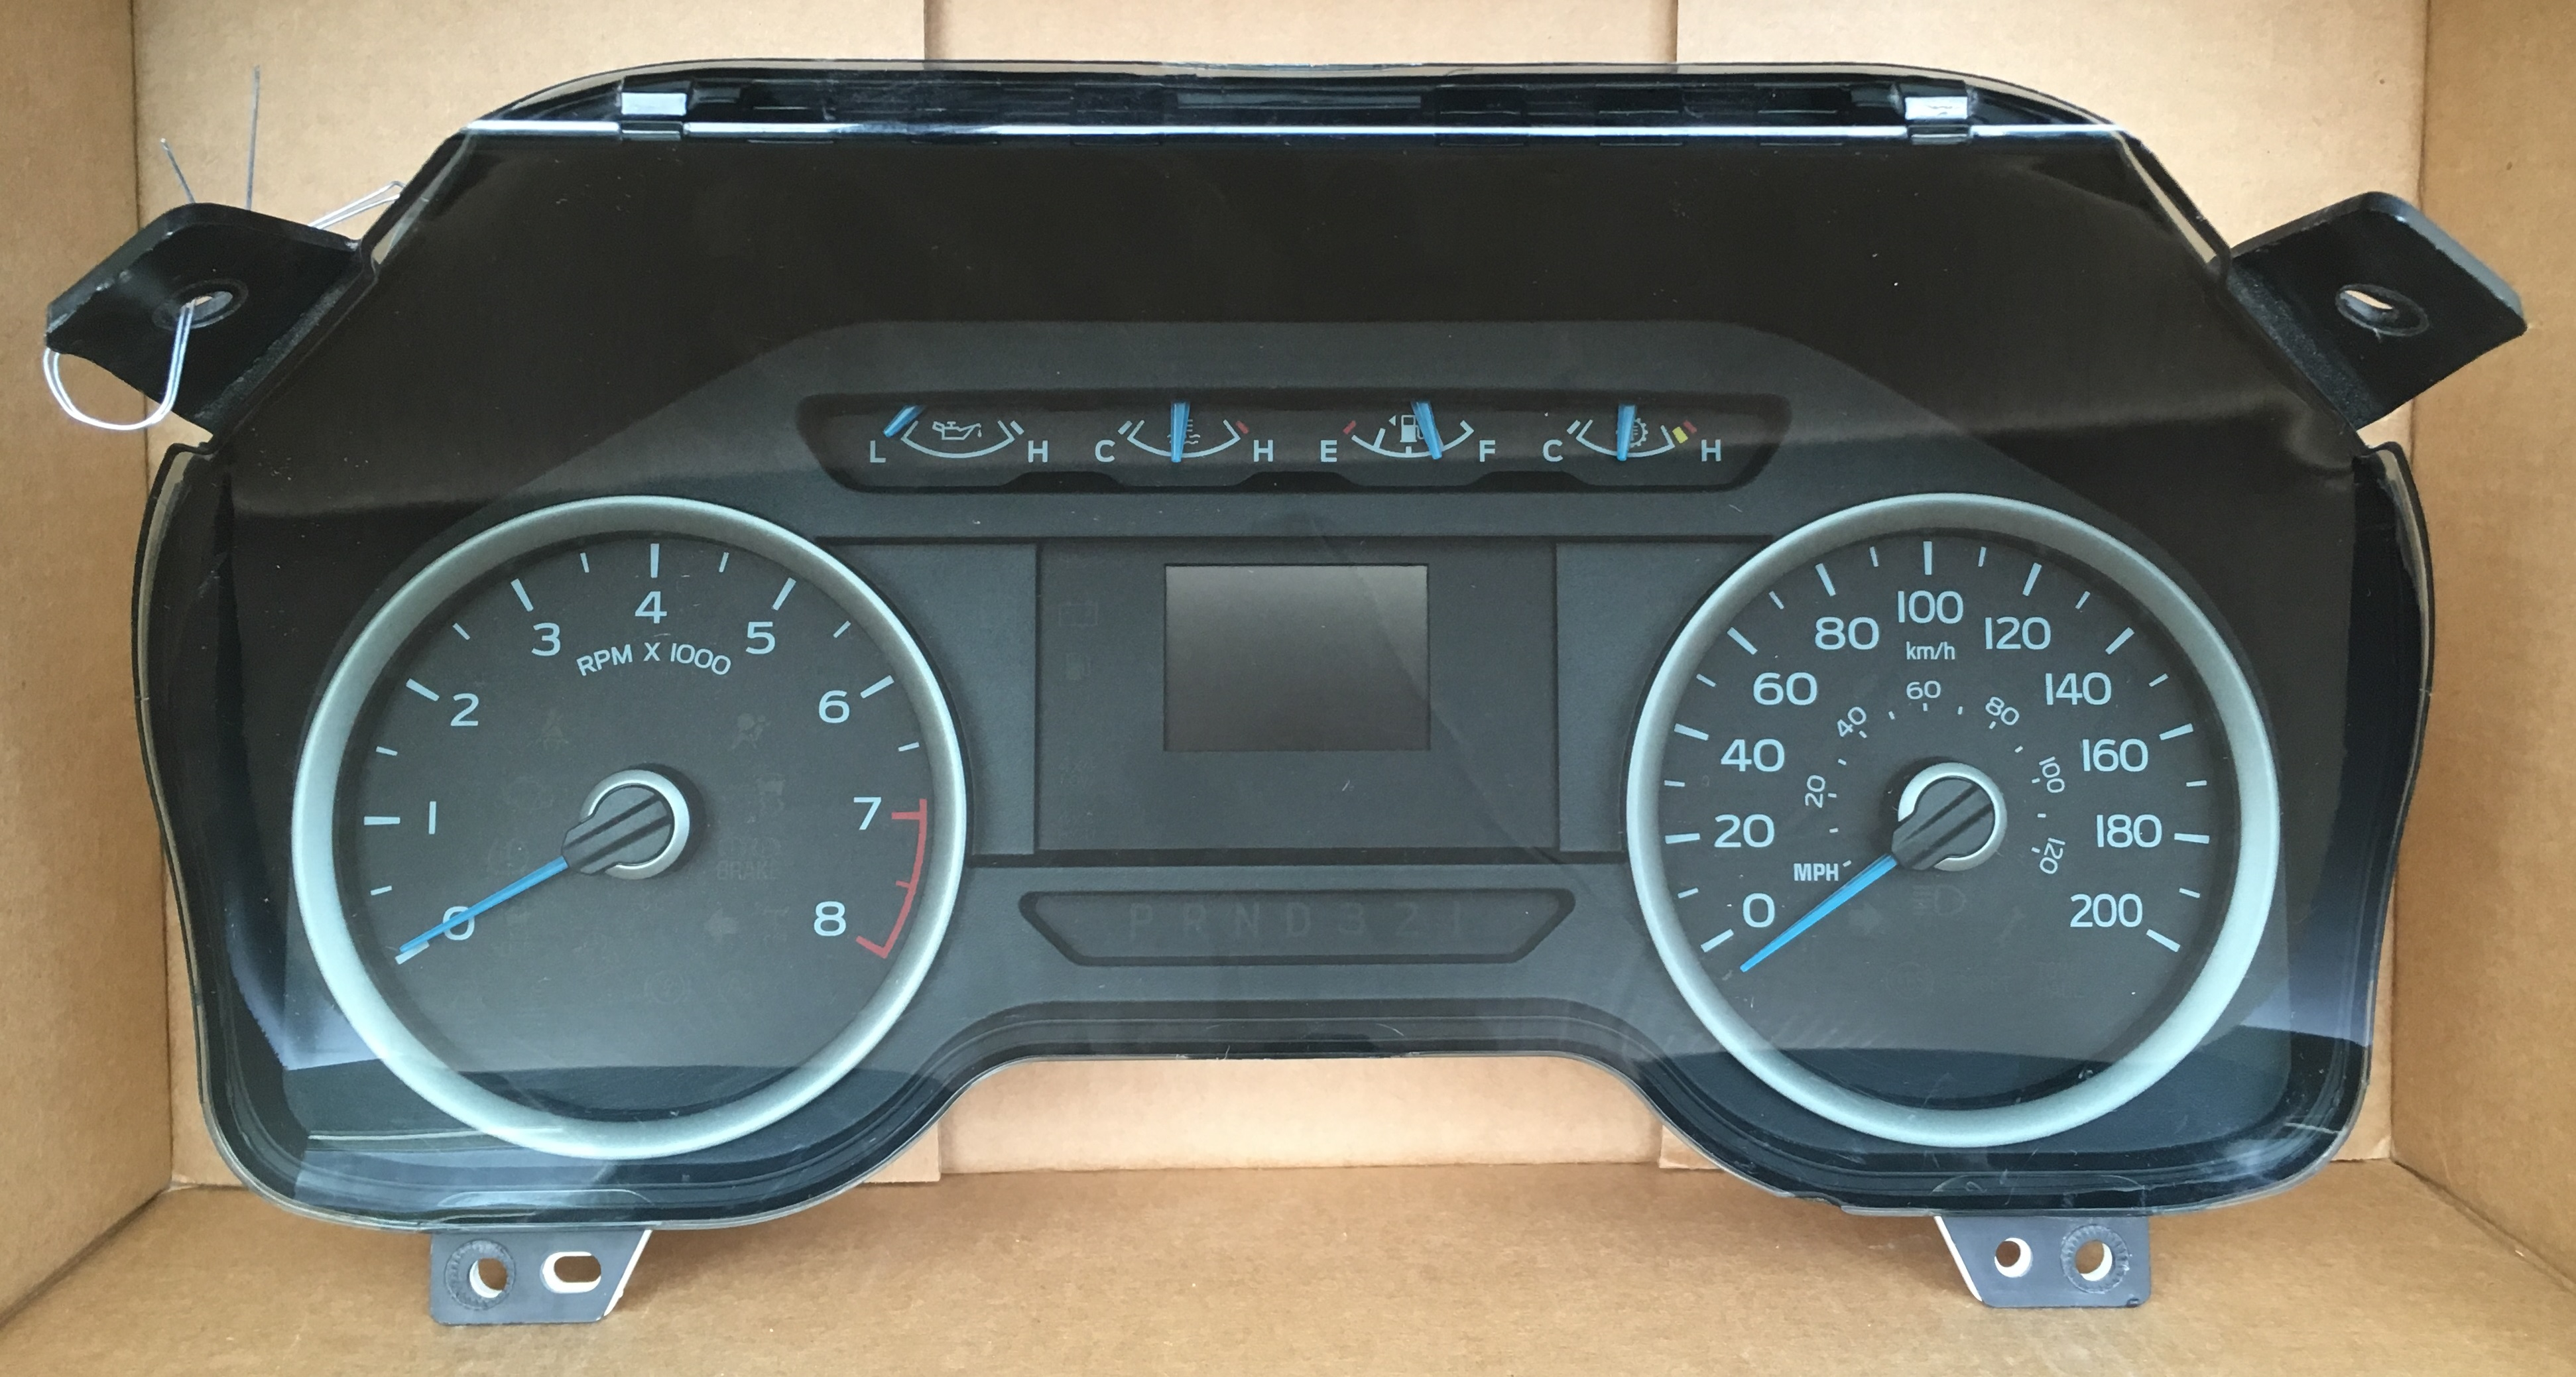 2015 FORD F150 USED DASHBOARD INSTRUMENT CLUSTER FOR SALE (KM/H)